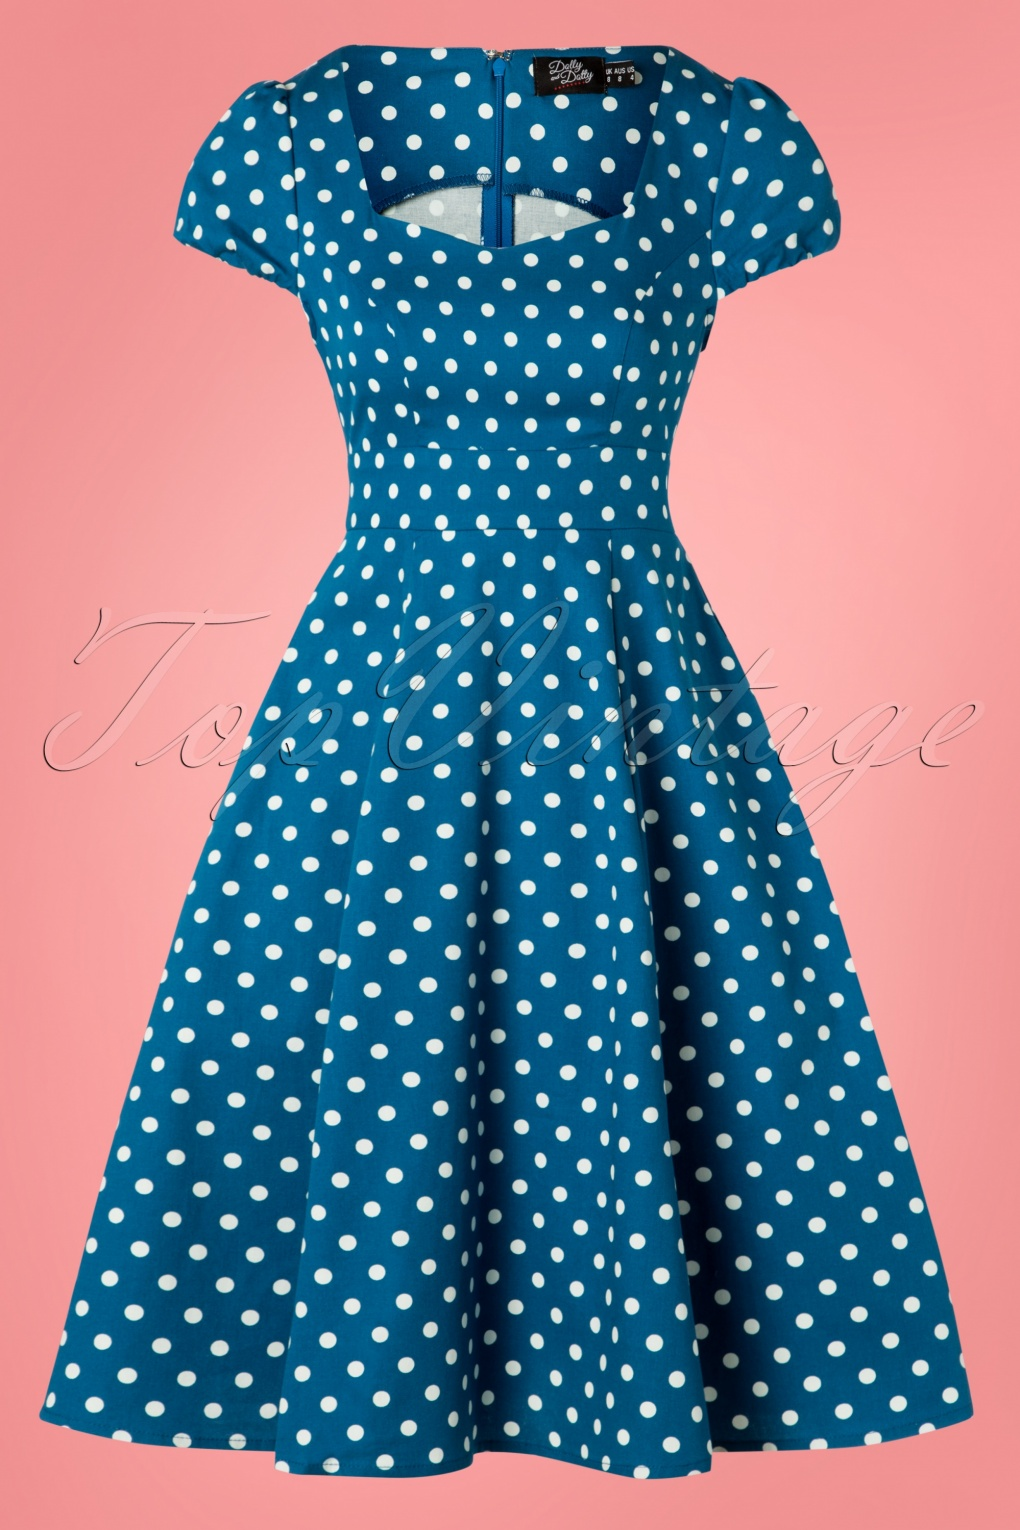 e8b6678f862 50 Vintage Inspired Clothing Stores 50s Claudia Polkadot Swing Dress in  Peacock Blue  38.61 AT